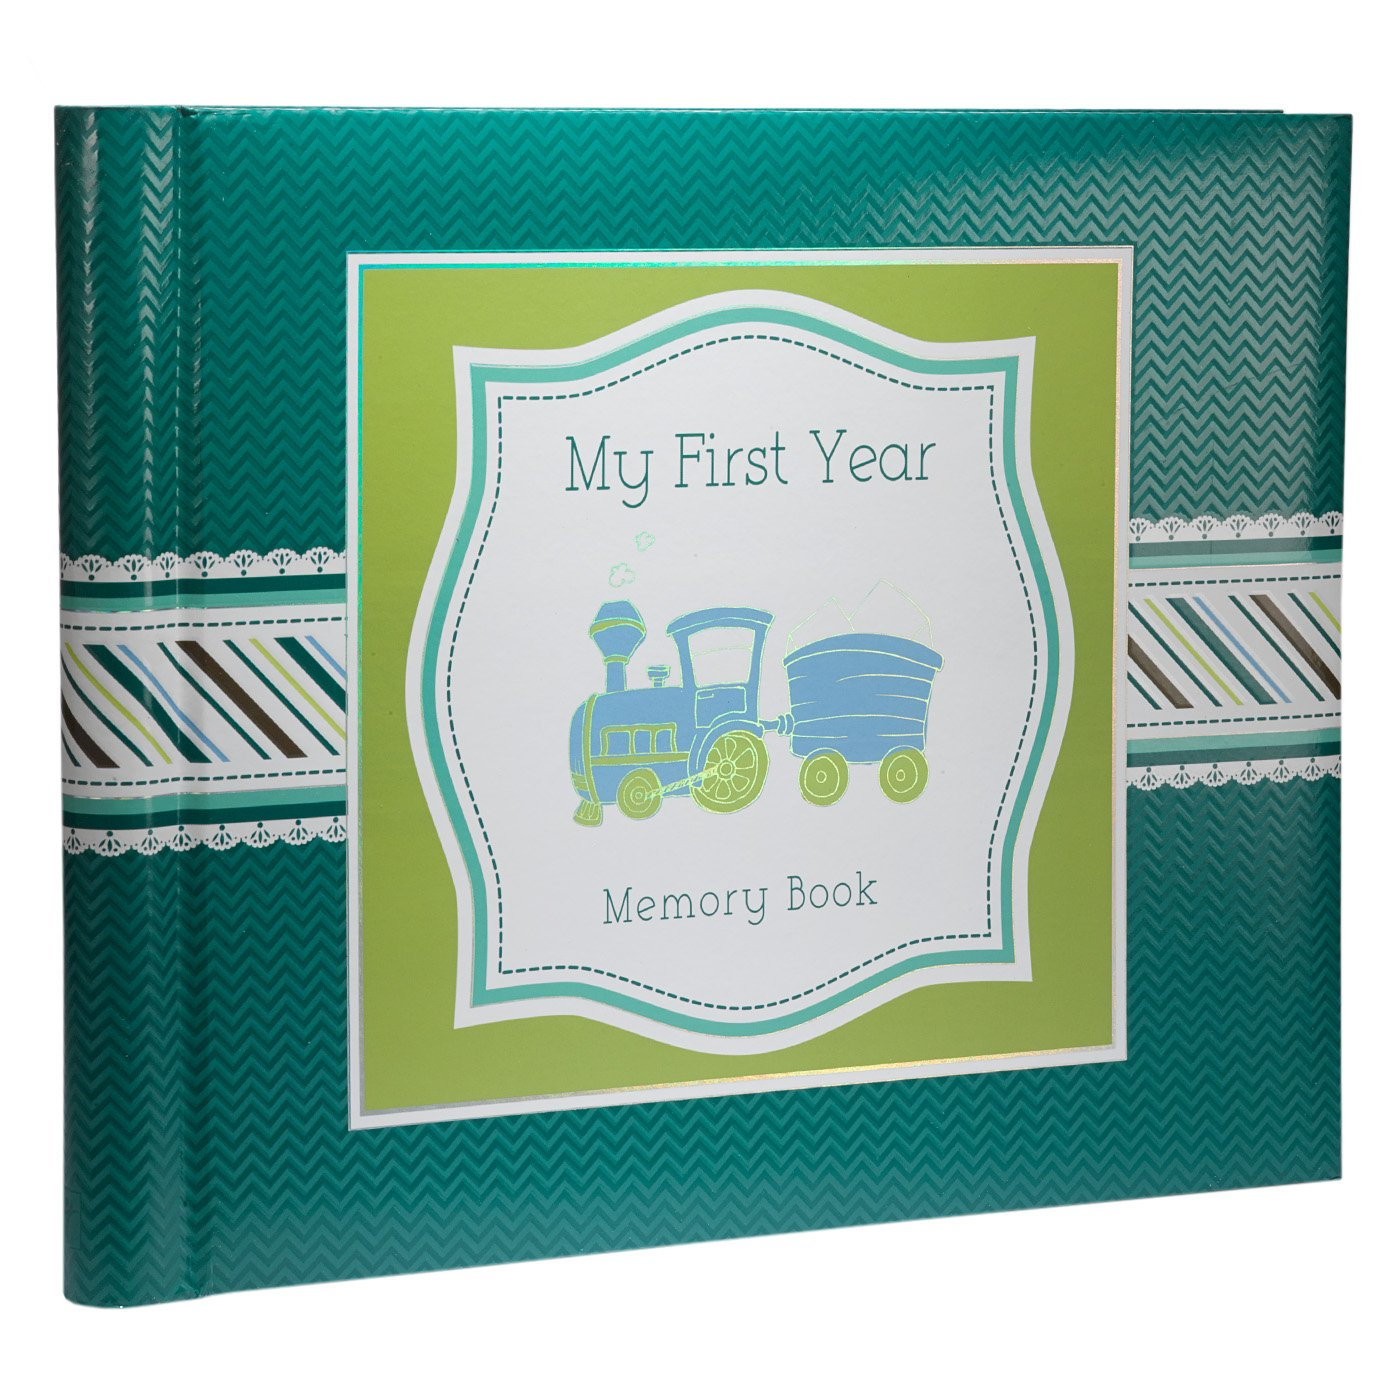 my first year photo album